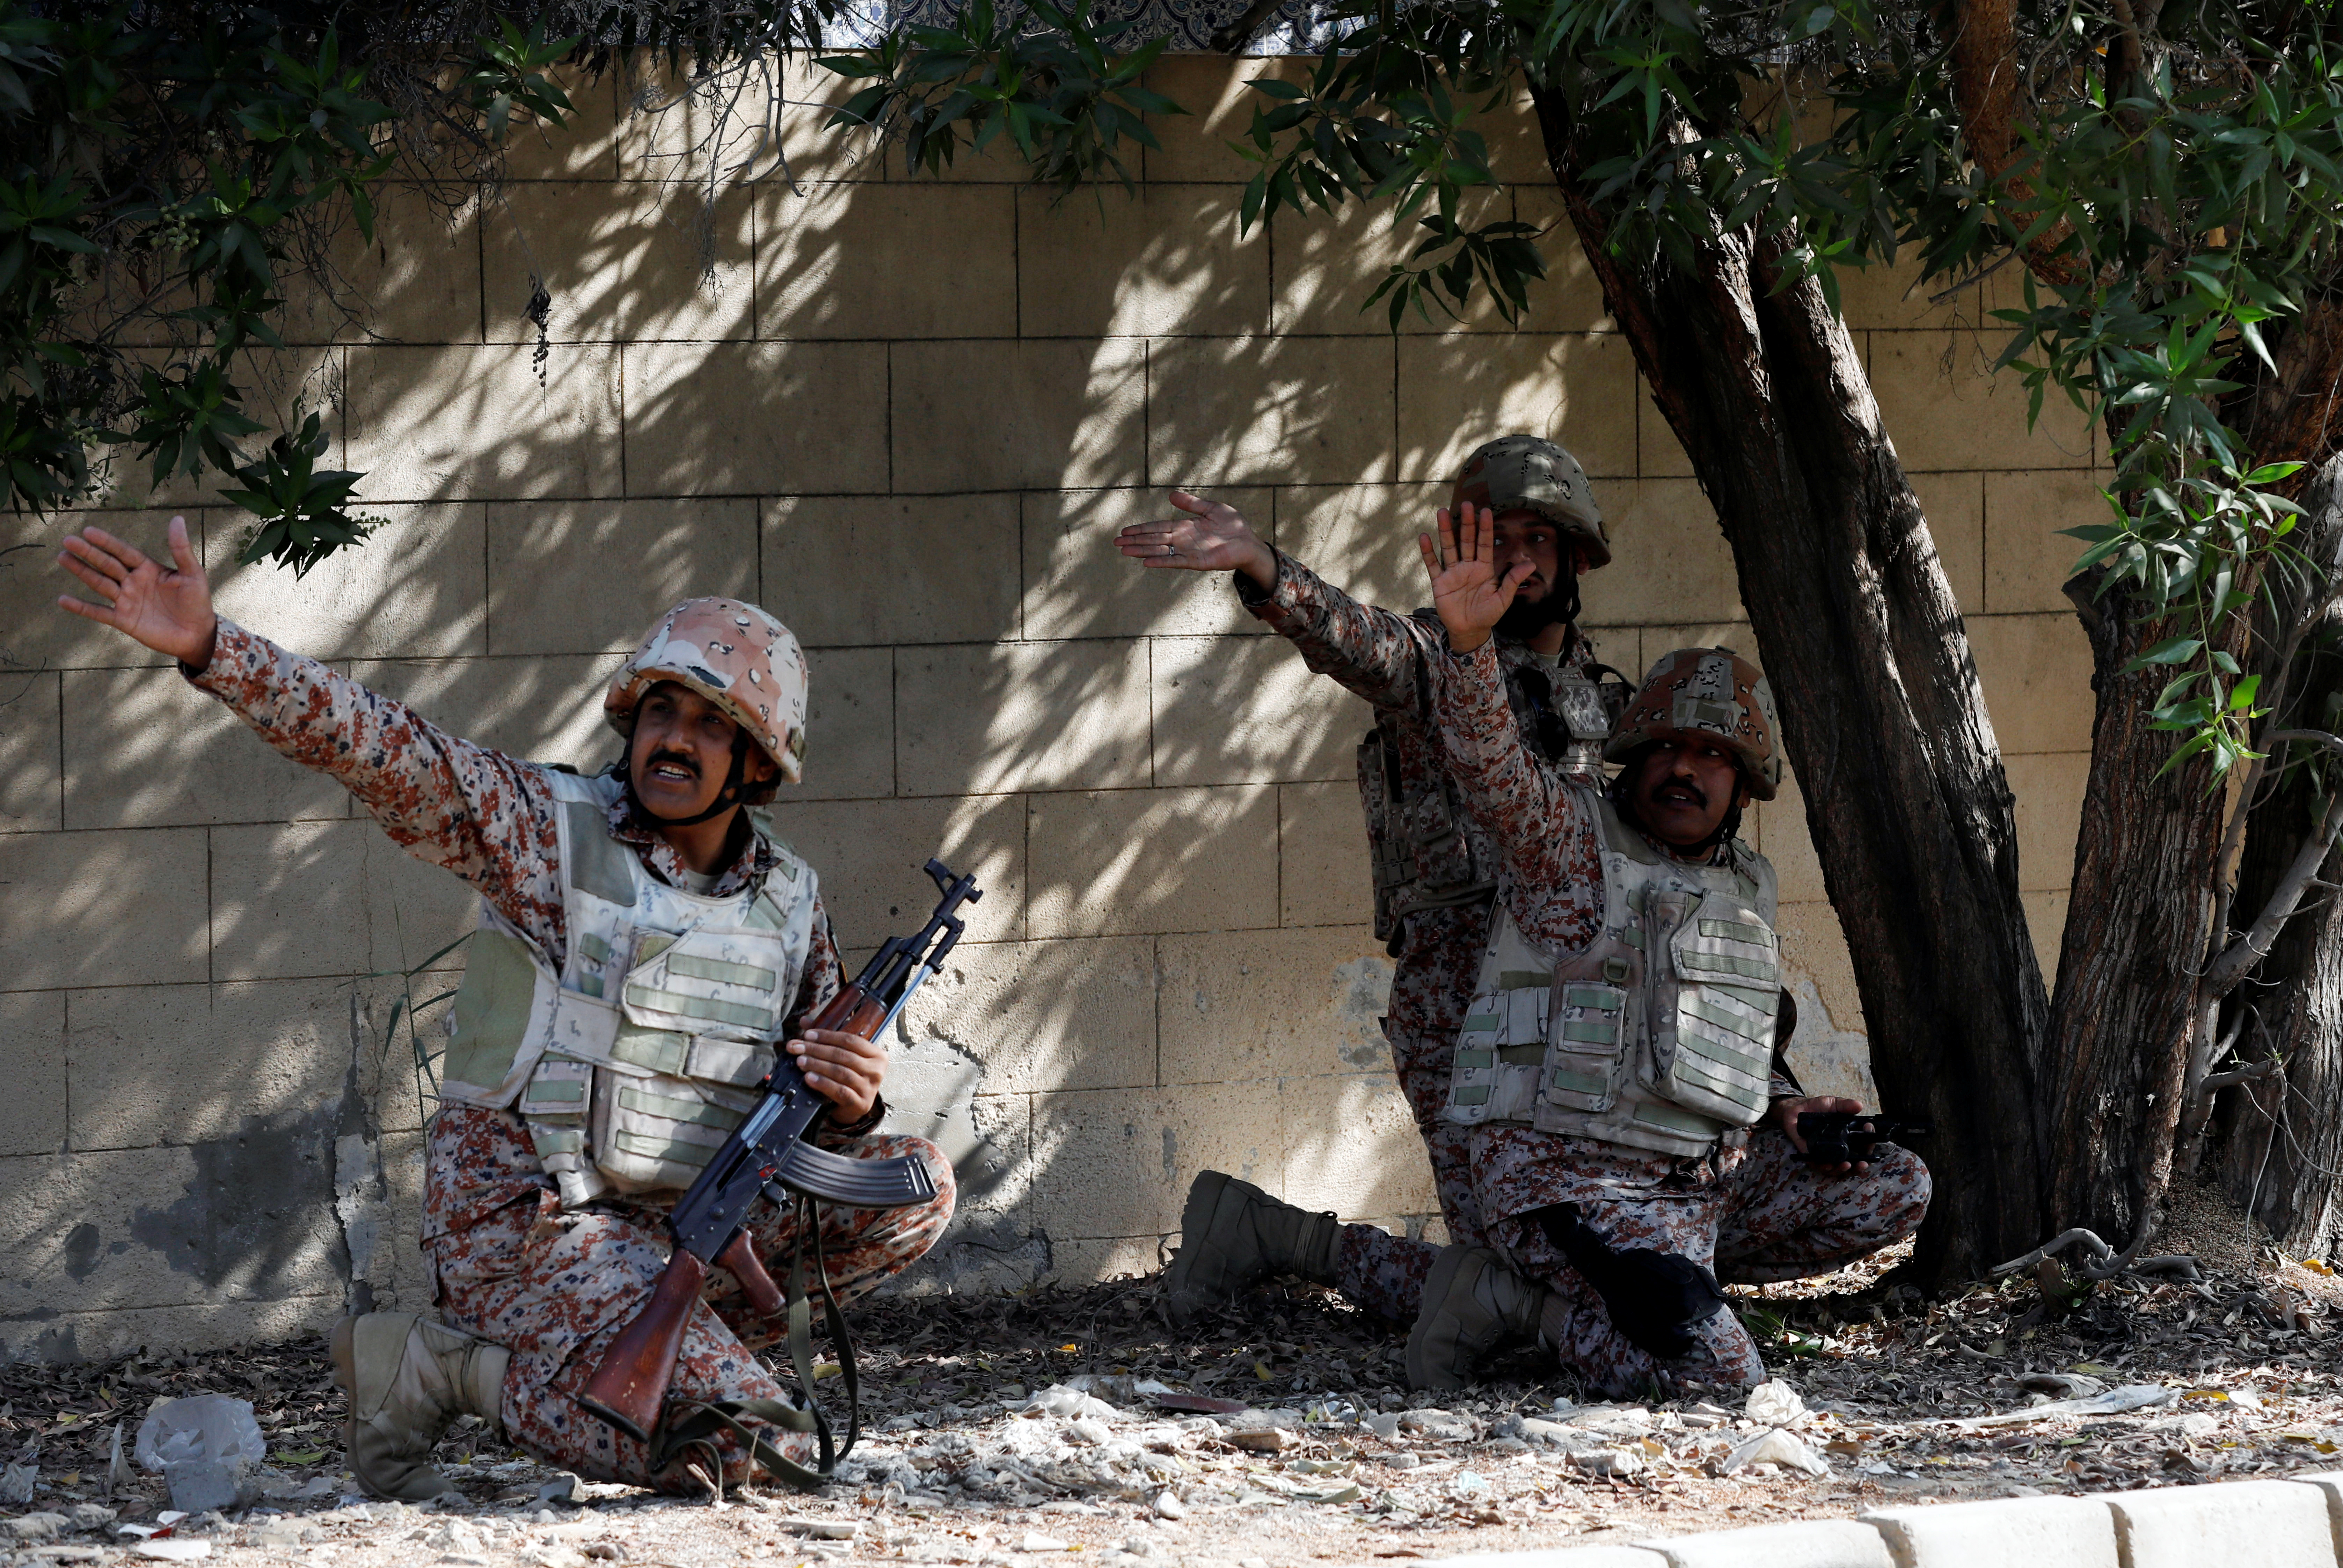 Paramilitary soldiers take cover behind a wall during an attack on the Chinese consulate, where blasts and shots are heard, in Karachi, Pakistan November 23, 2018. REUTERS/Akhtar Soomro